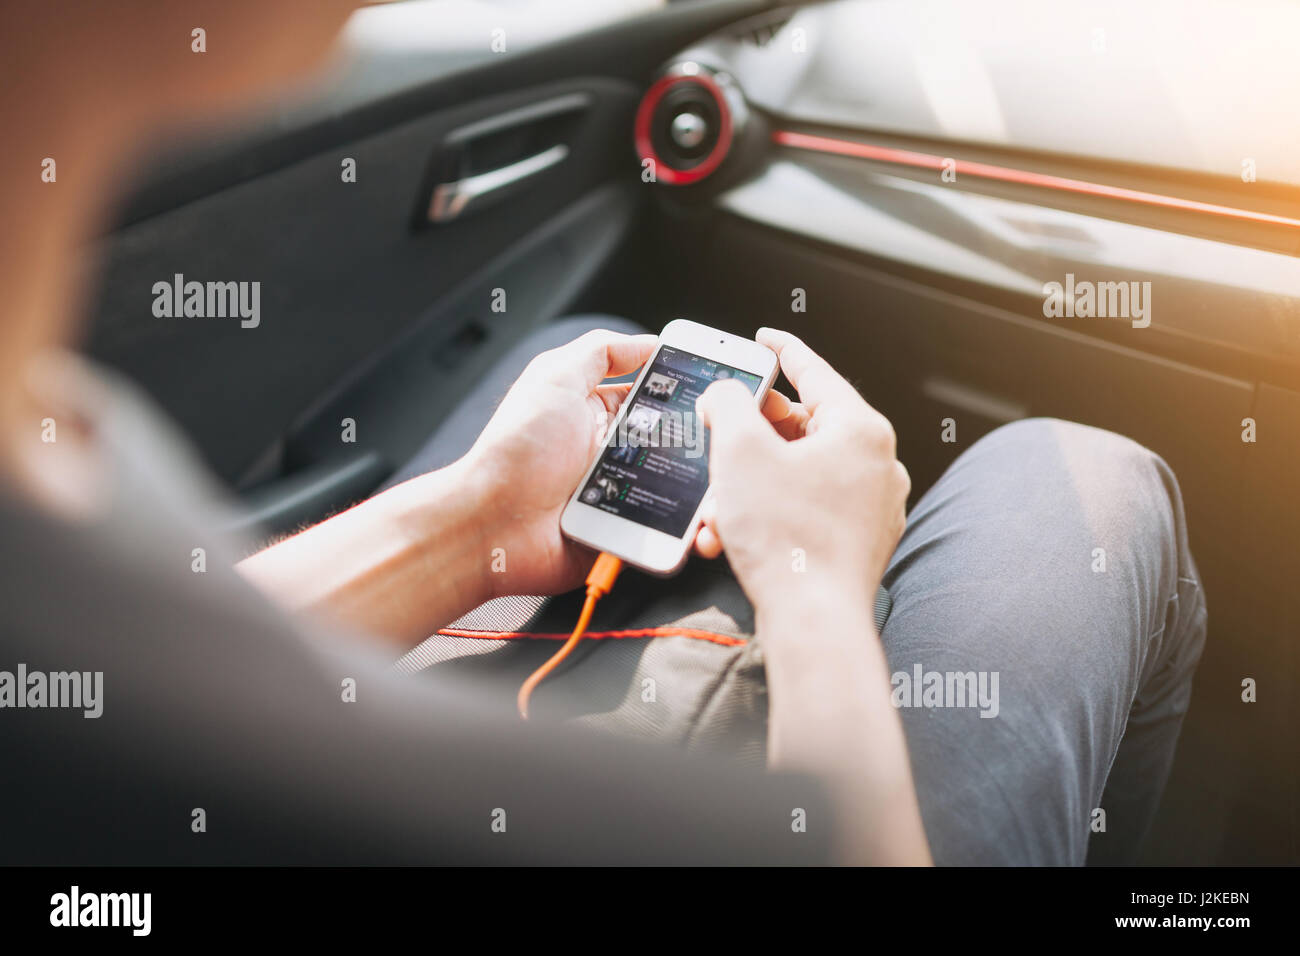 Man connecting phone to the car media system. - Stock Image